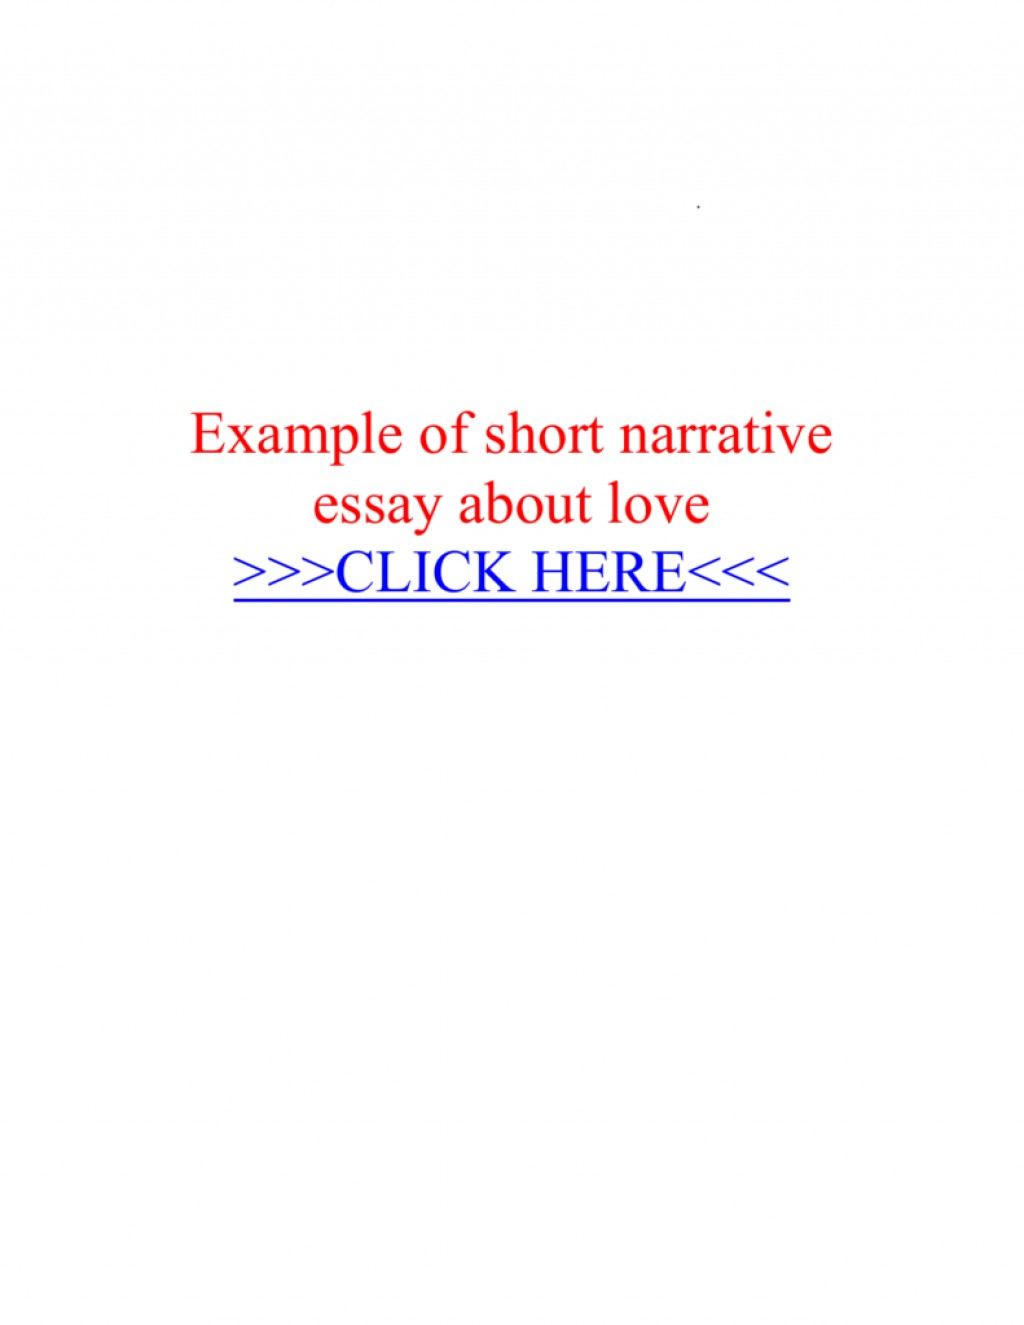 017 Essay Example Short Narrative 008851680 1 Fantastic Pdf About Life Topics Large